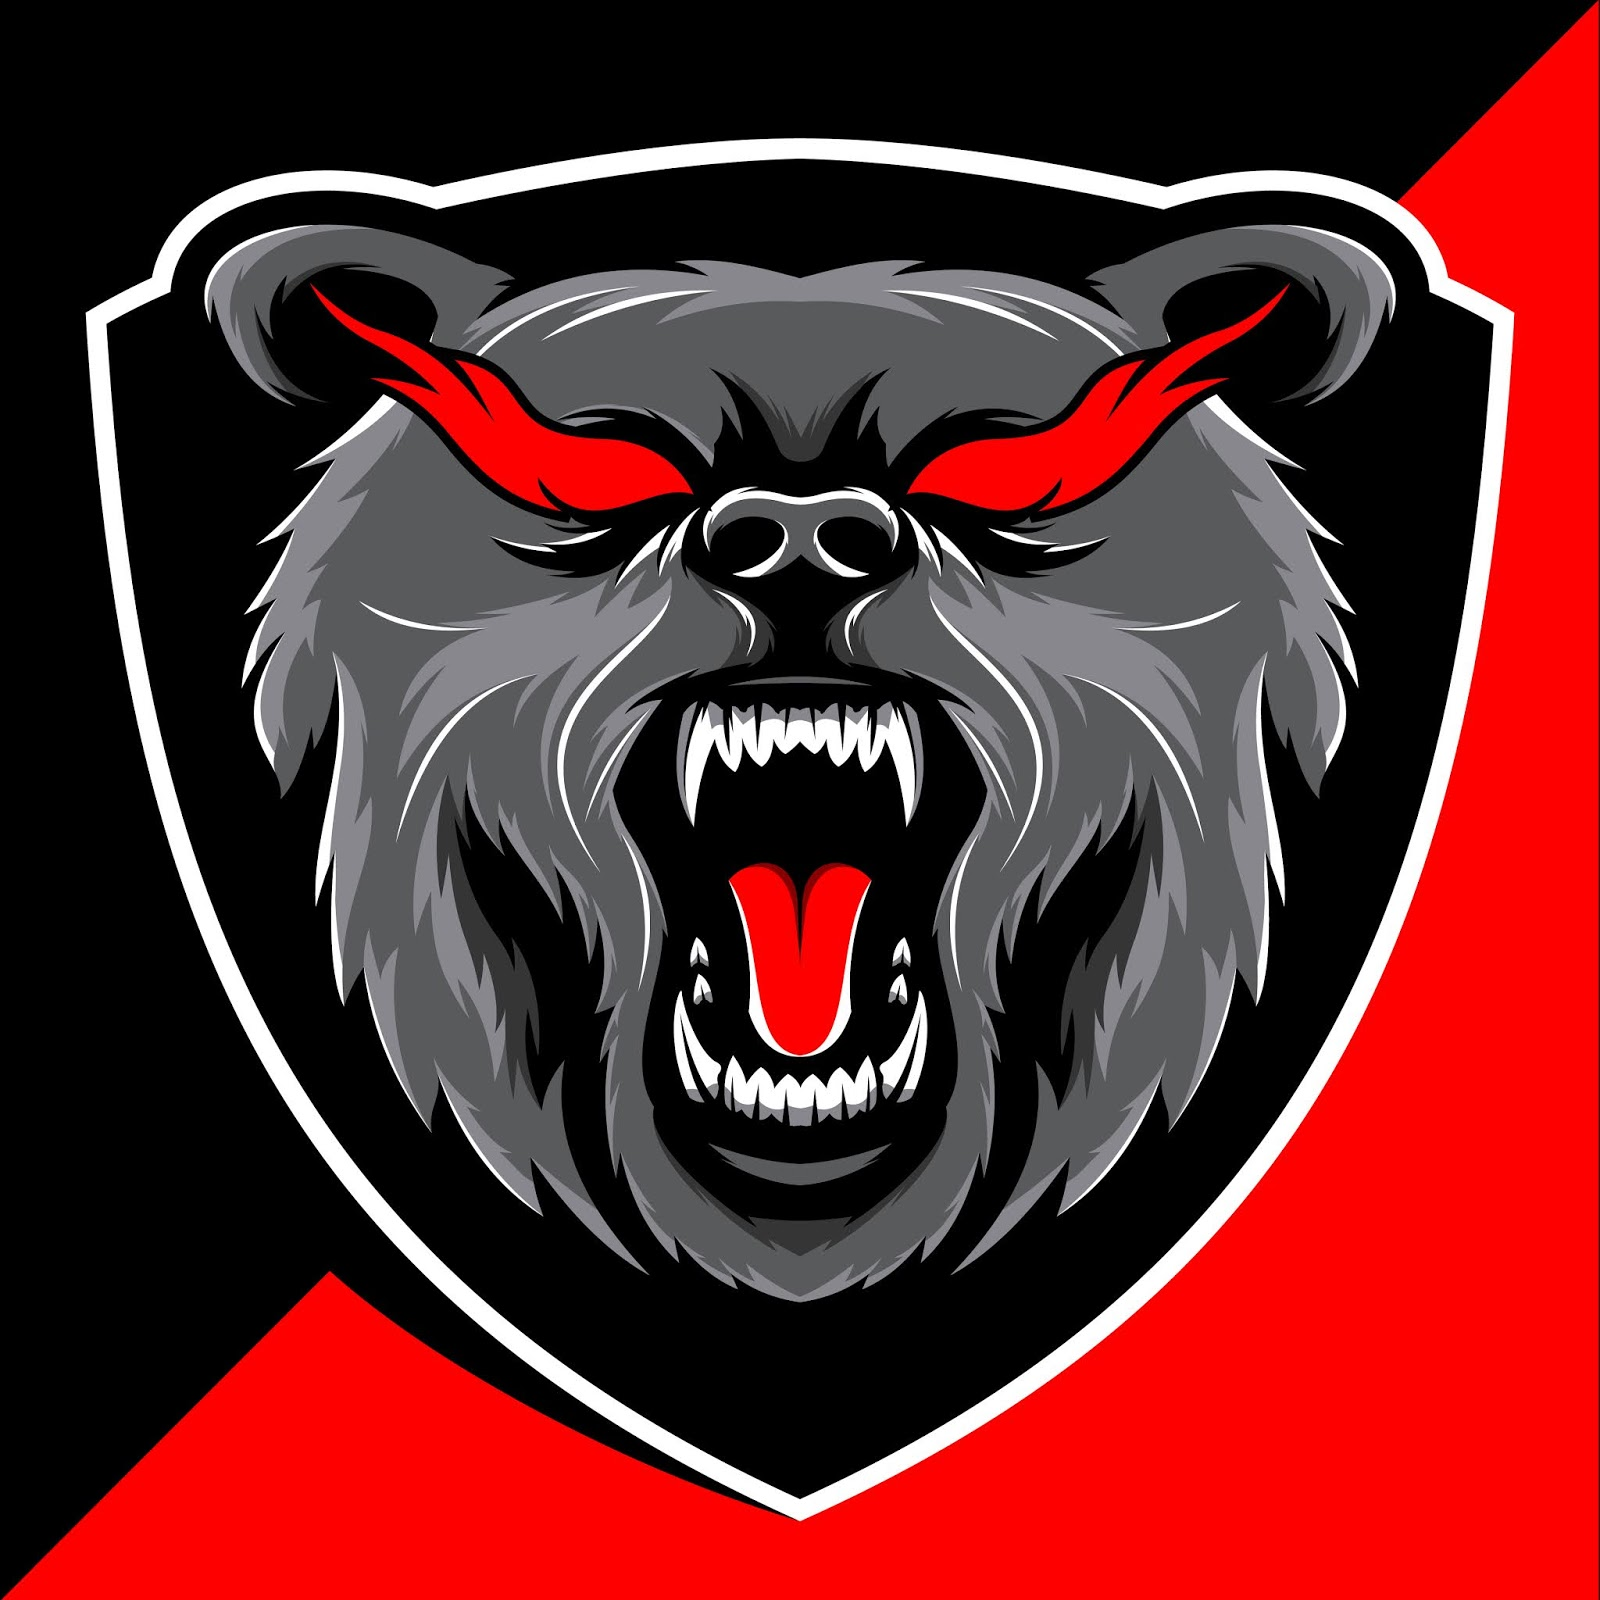 Angry Bear Head Mascot Esport Logo Design Free Download Vector CDR, AI, EPS and PNG Formats